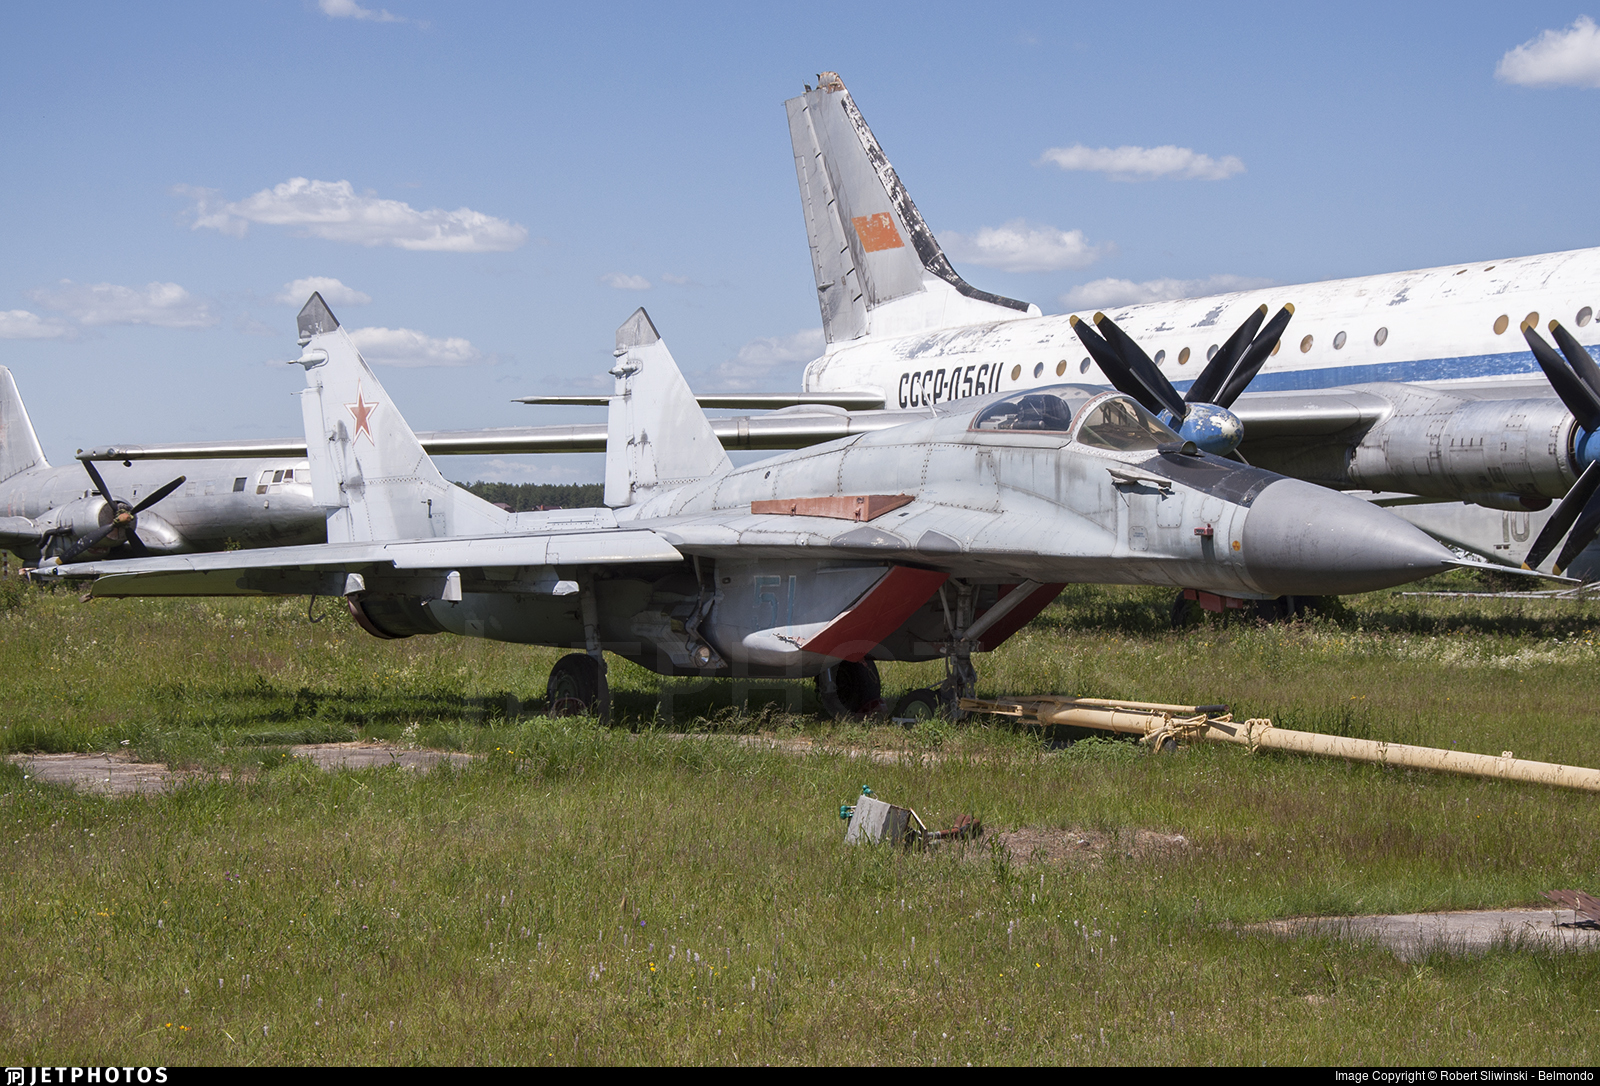 51 - Mikoyan-Gurevich MiG-29S Fulcrum C - Russia - Air Force